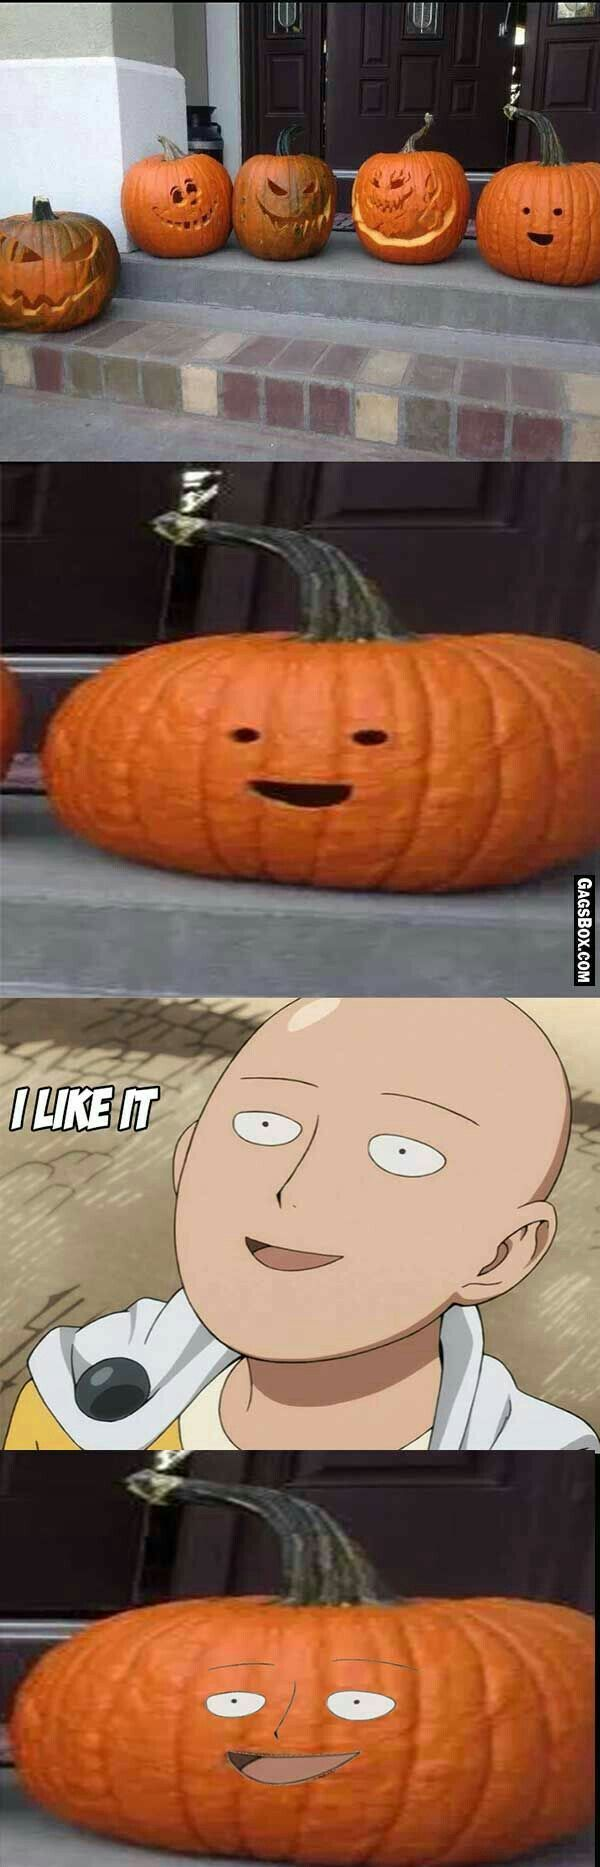 One Punch Man HAHAZAZAZAZH